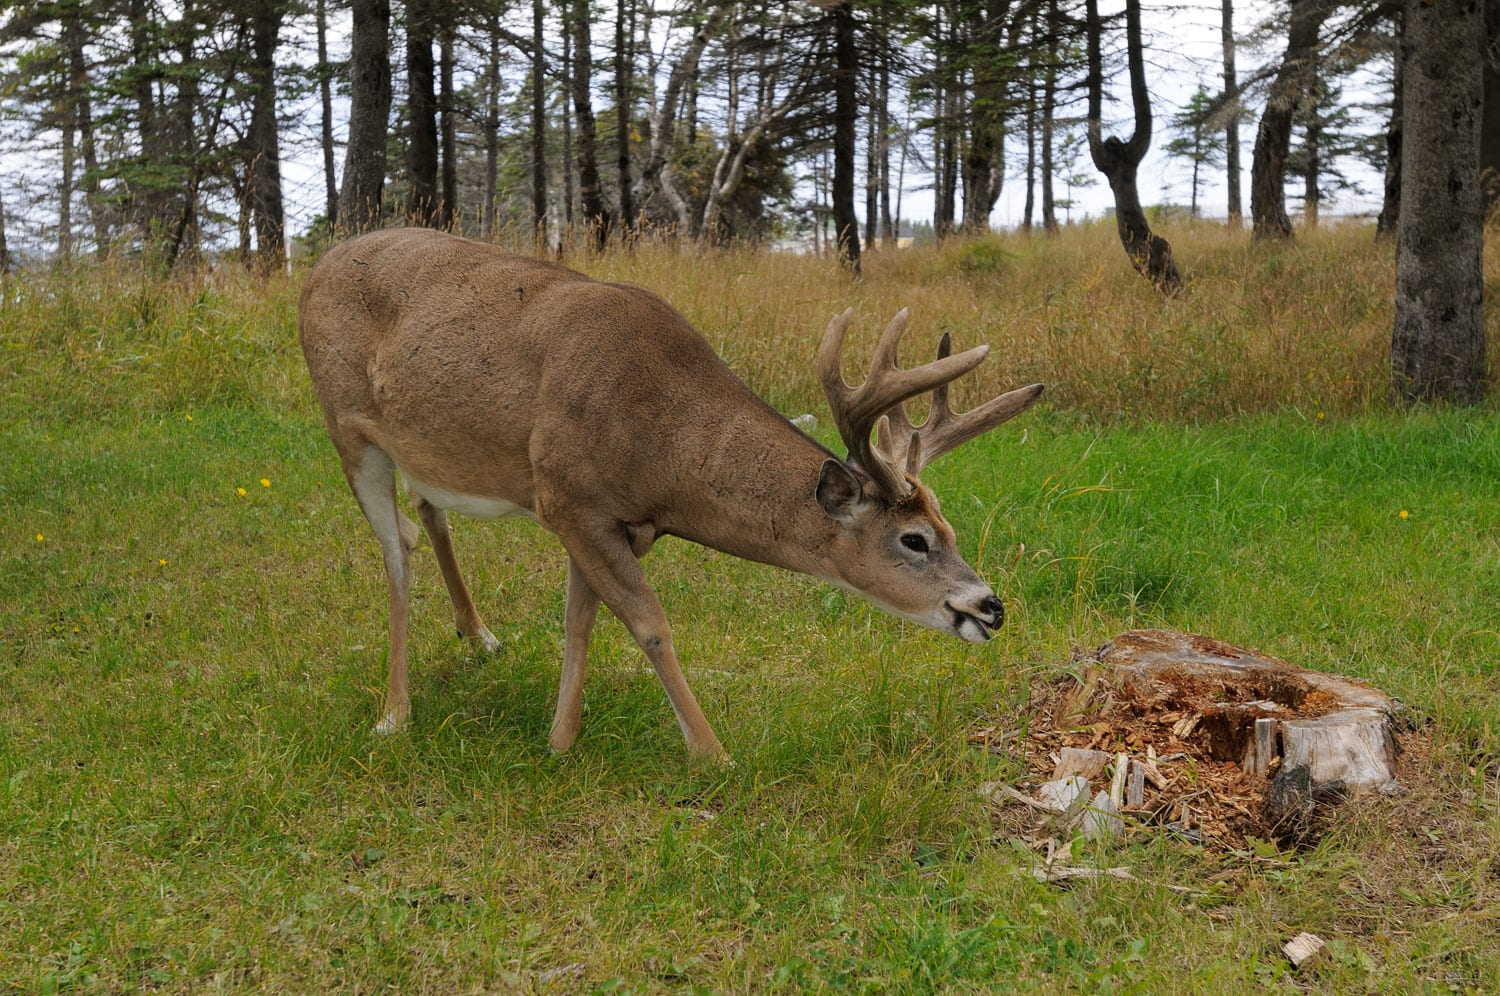 Some Tips To Make You a Better White-Tailed Deer Hunter